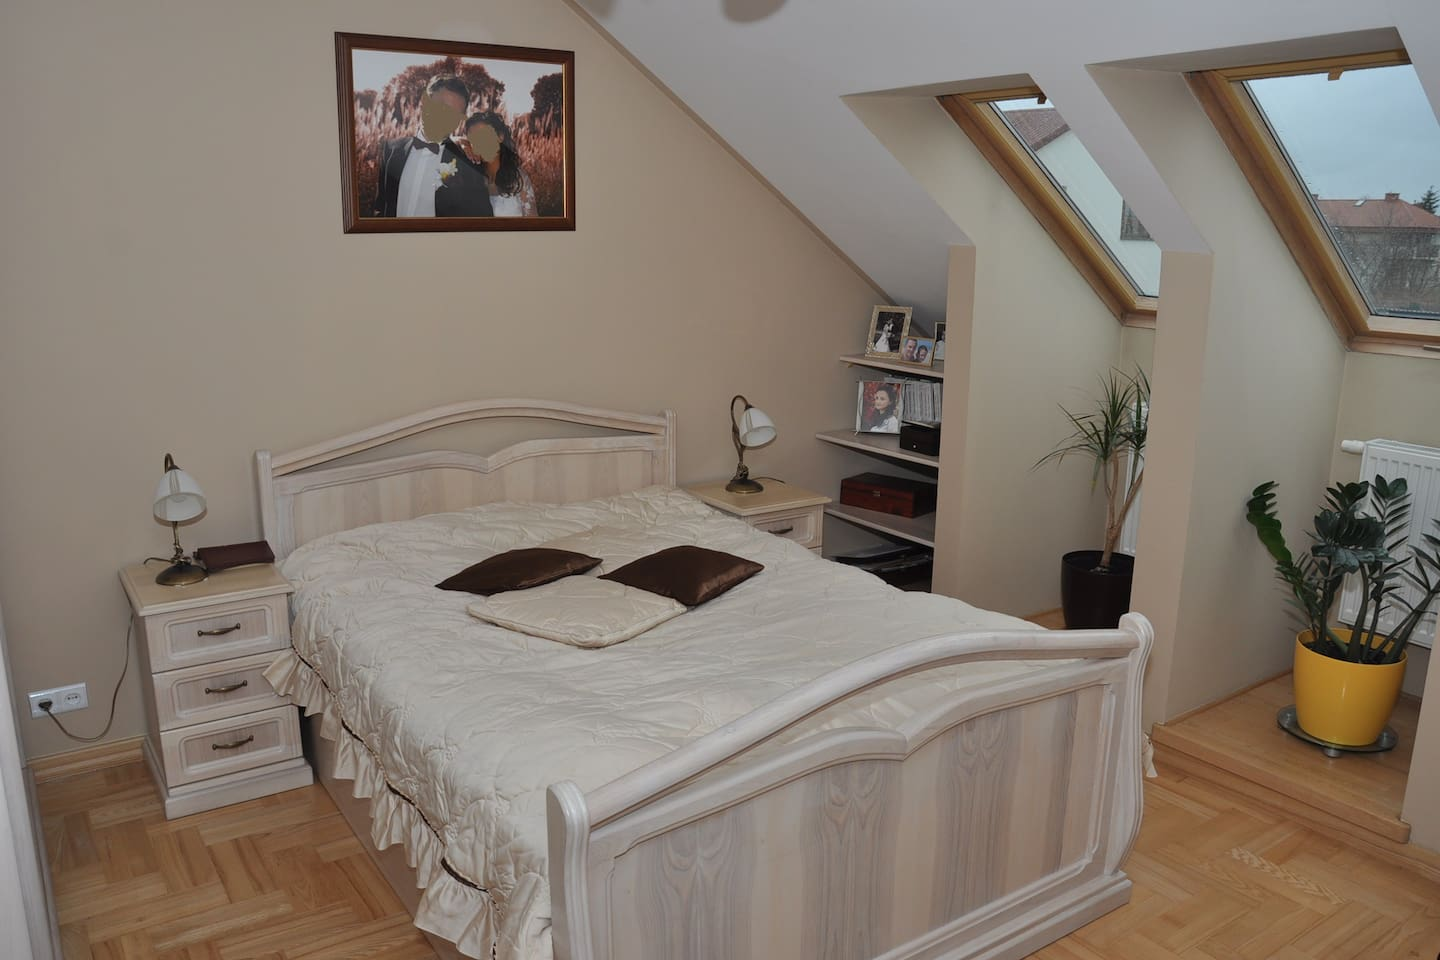 bed for 2 people 140x190